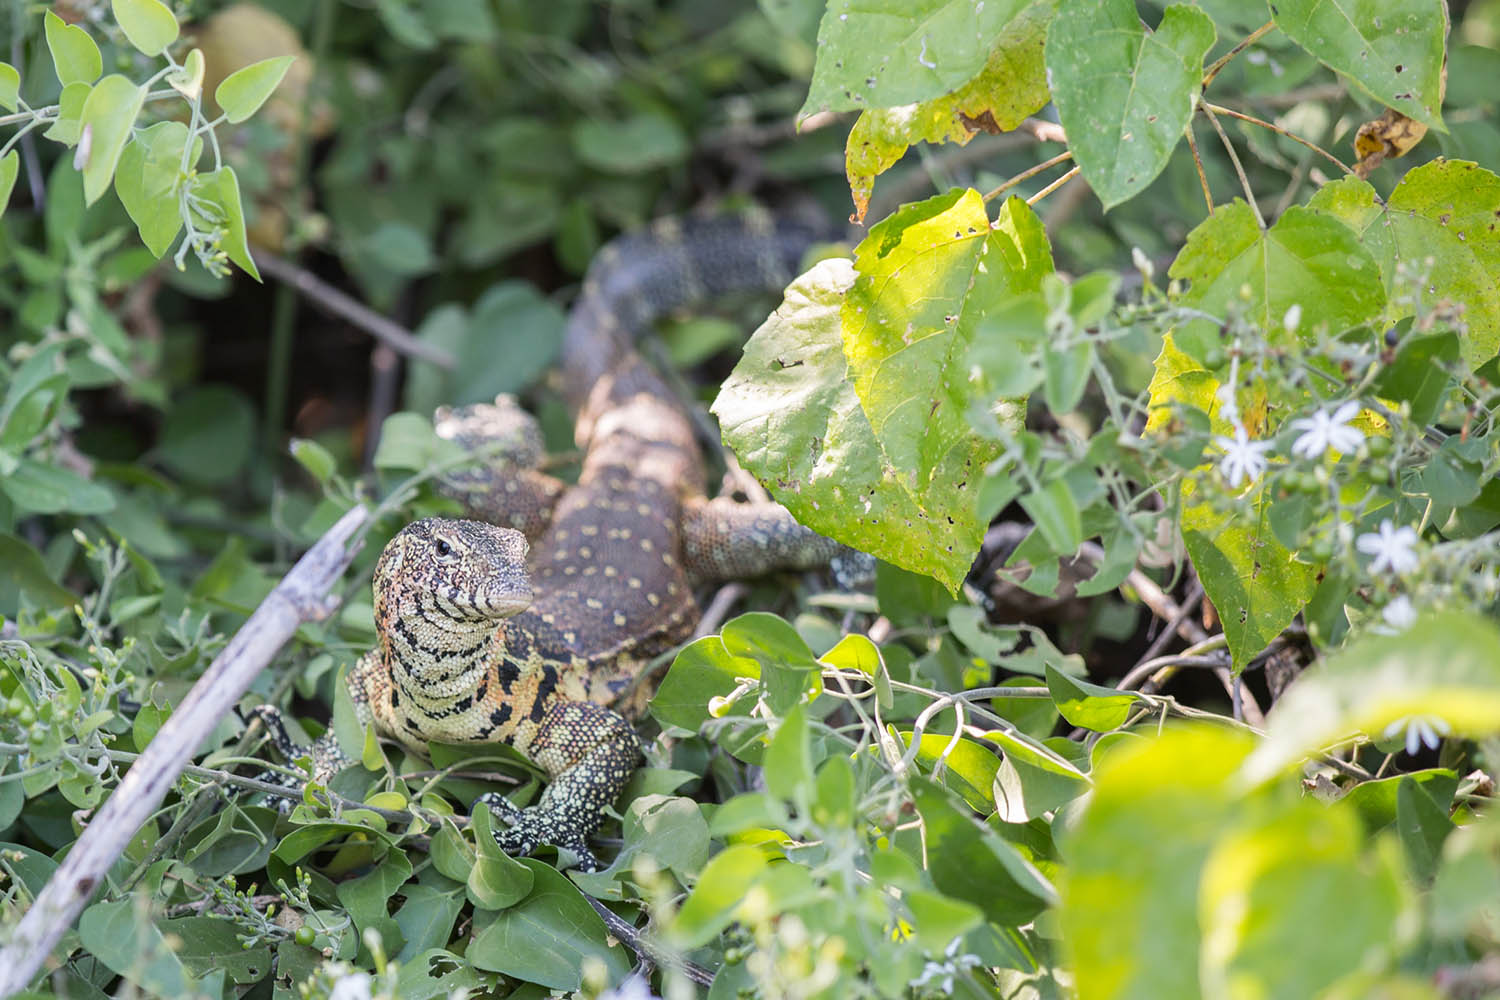 liwonde national park malawian-style-malawi-adventures-experiences-holidays-specialist-tour-operator-malawi-national-parks-reserves-monitor-lizard